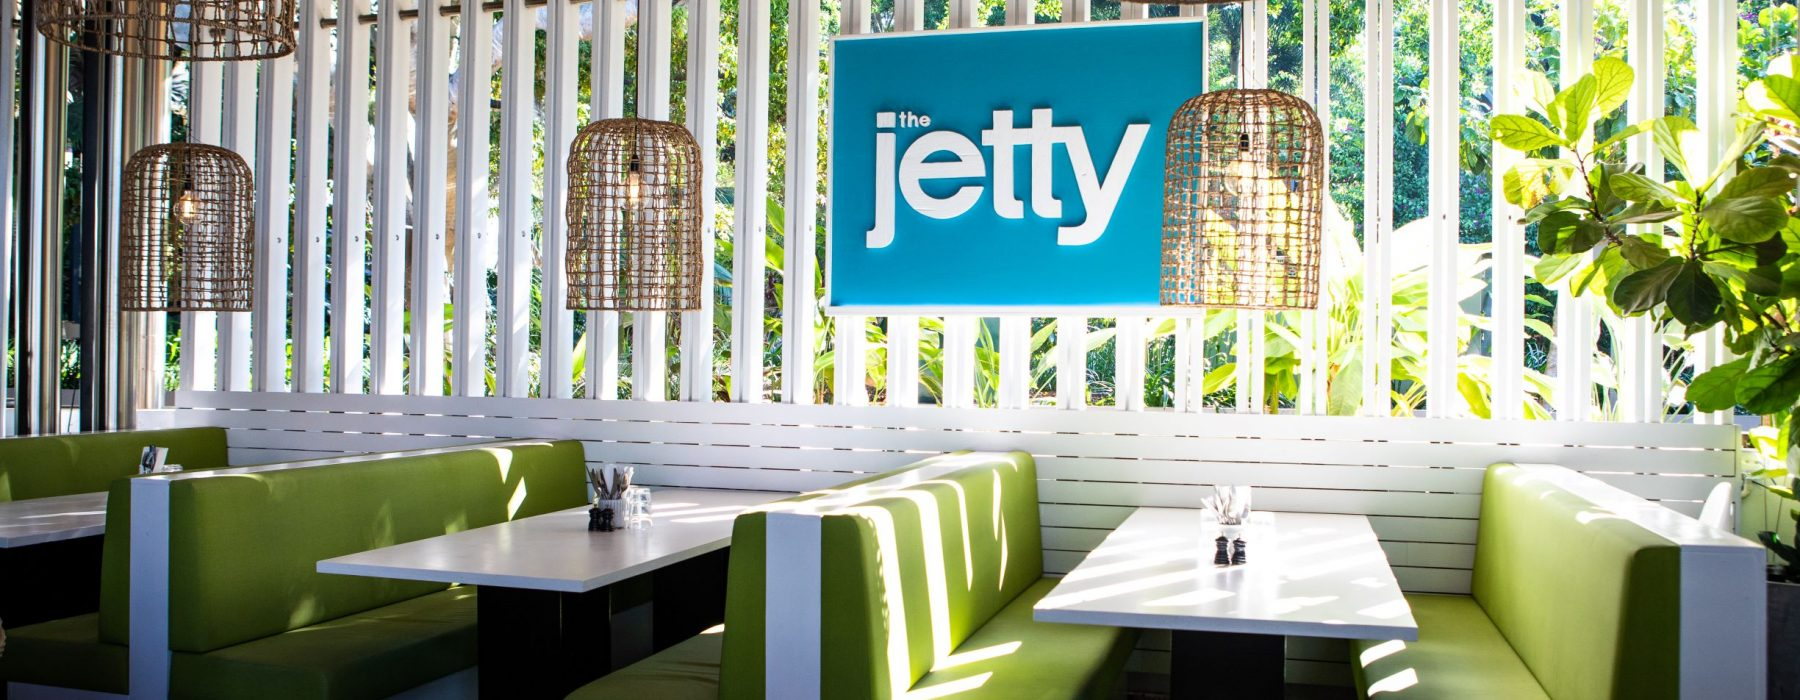 TheJetty_04.12.19_highres-24